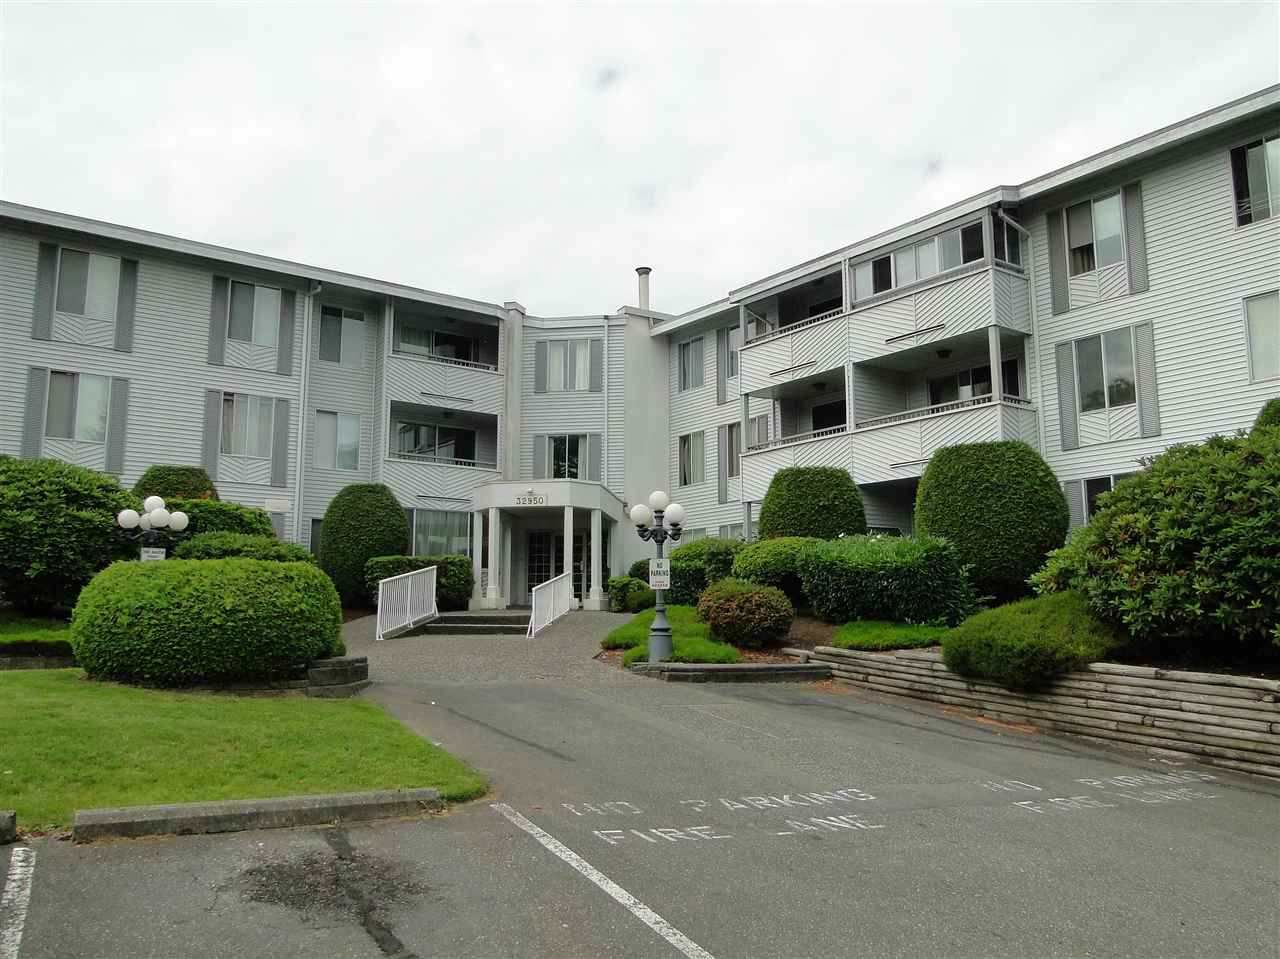 """Main Photo: 303 32950 AMICUS Place in Abbotsford: Central Abbotsford Condo for sale in """"The Haven"""" : MLS®# R2243632"""